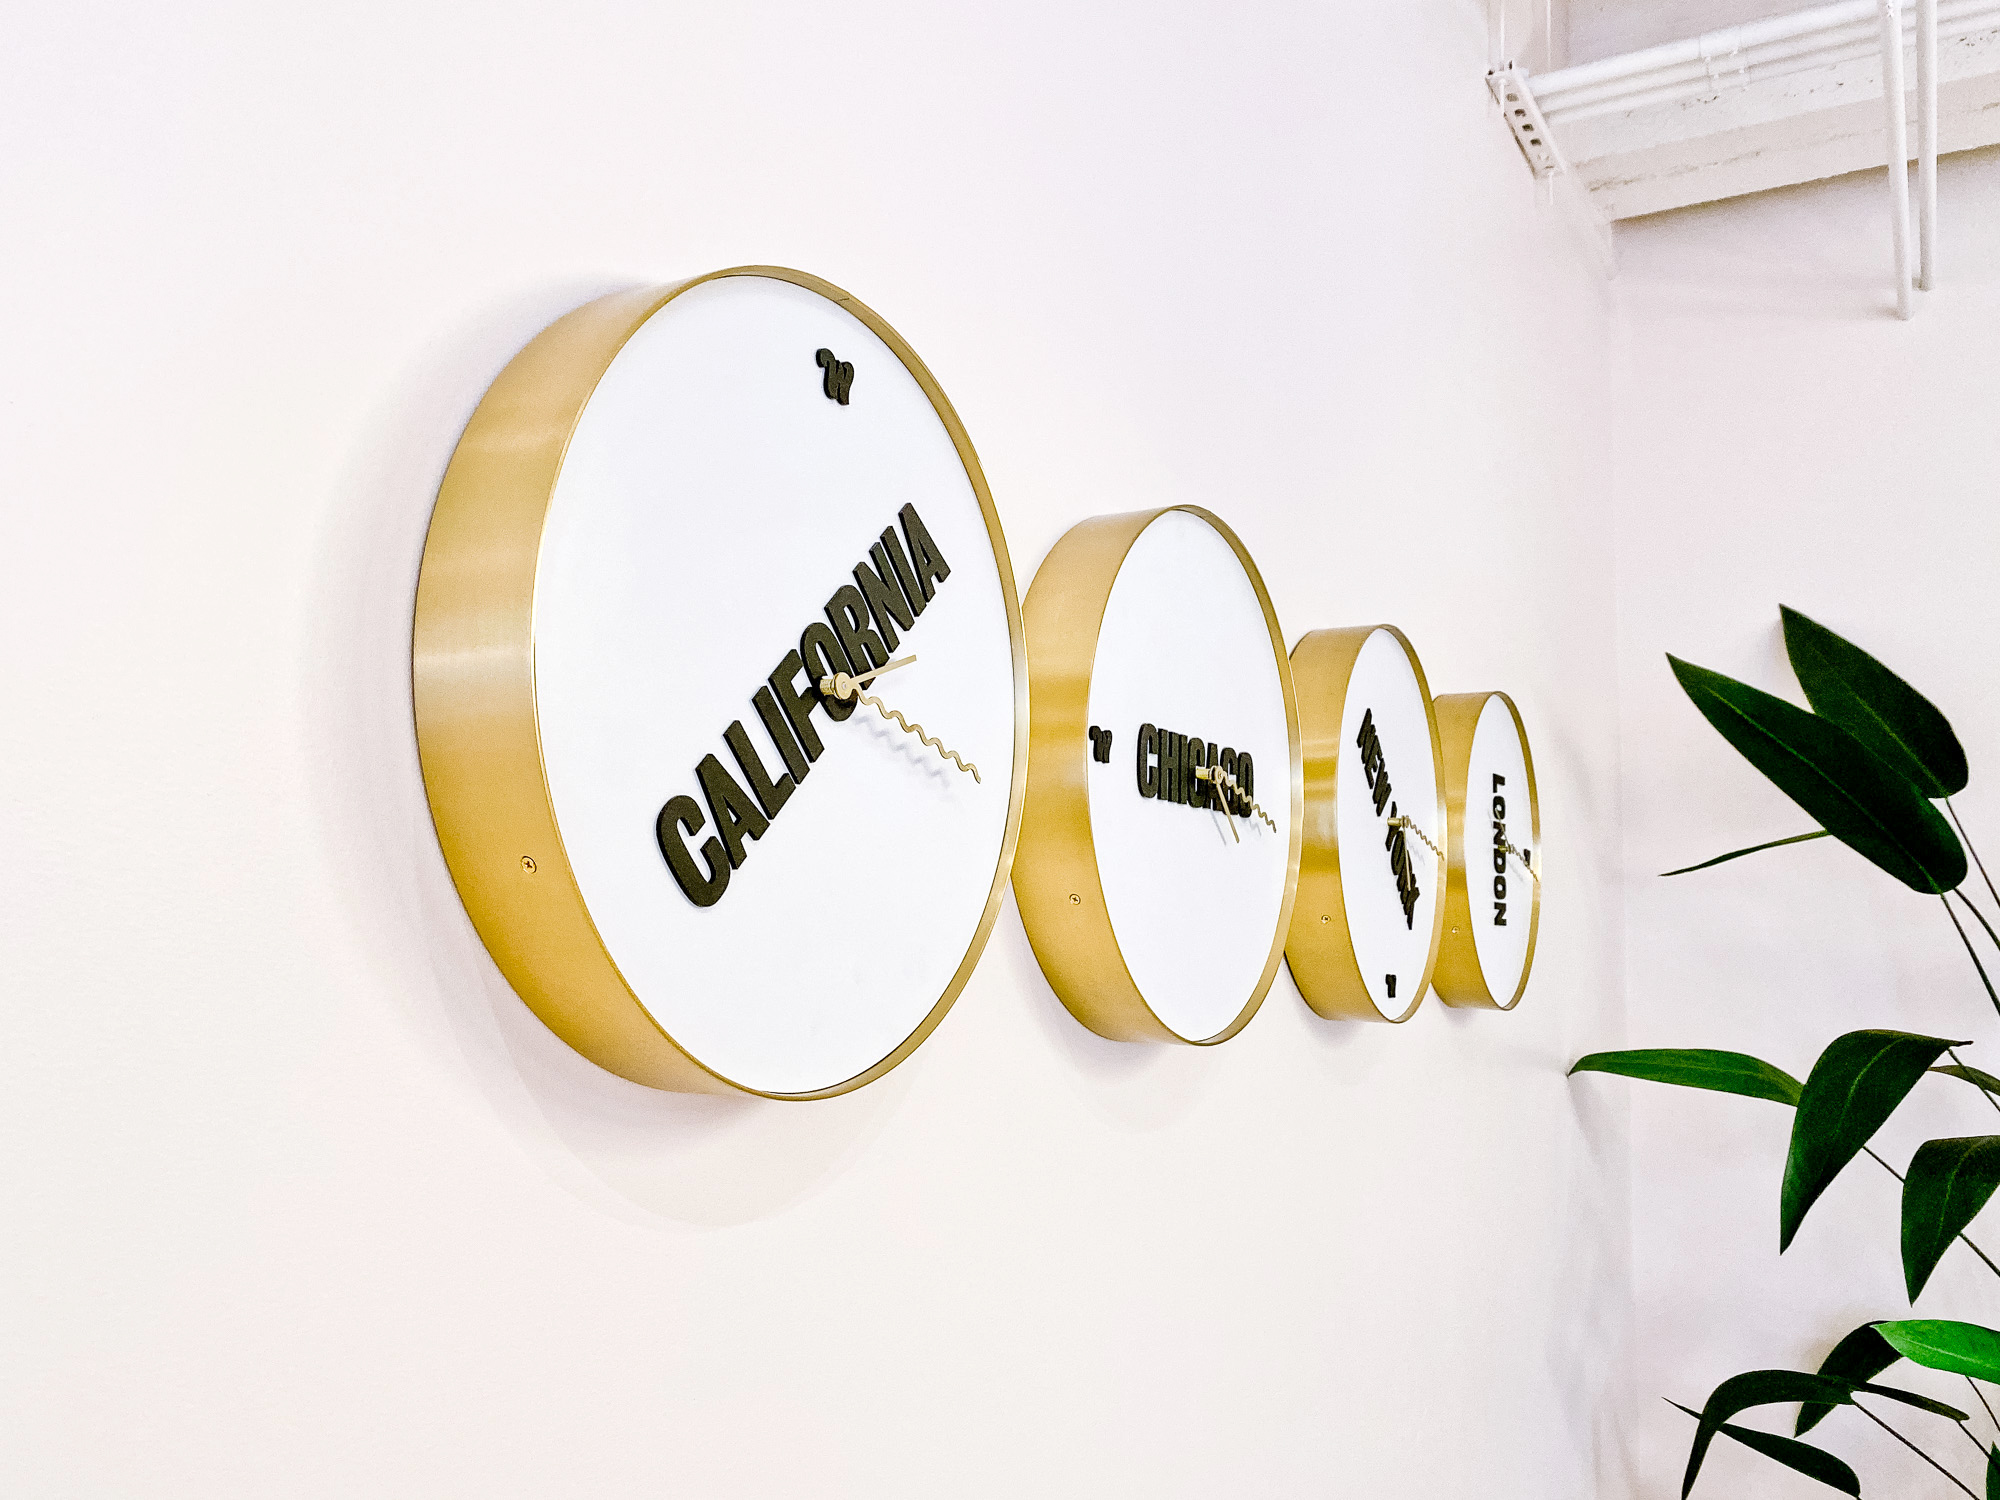 Custom brass and white international time zone clock wall for the San Francisco expansion of The Wing, a network of work and community spaces designed for women.